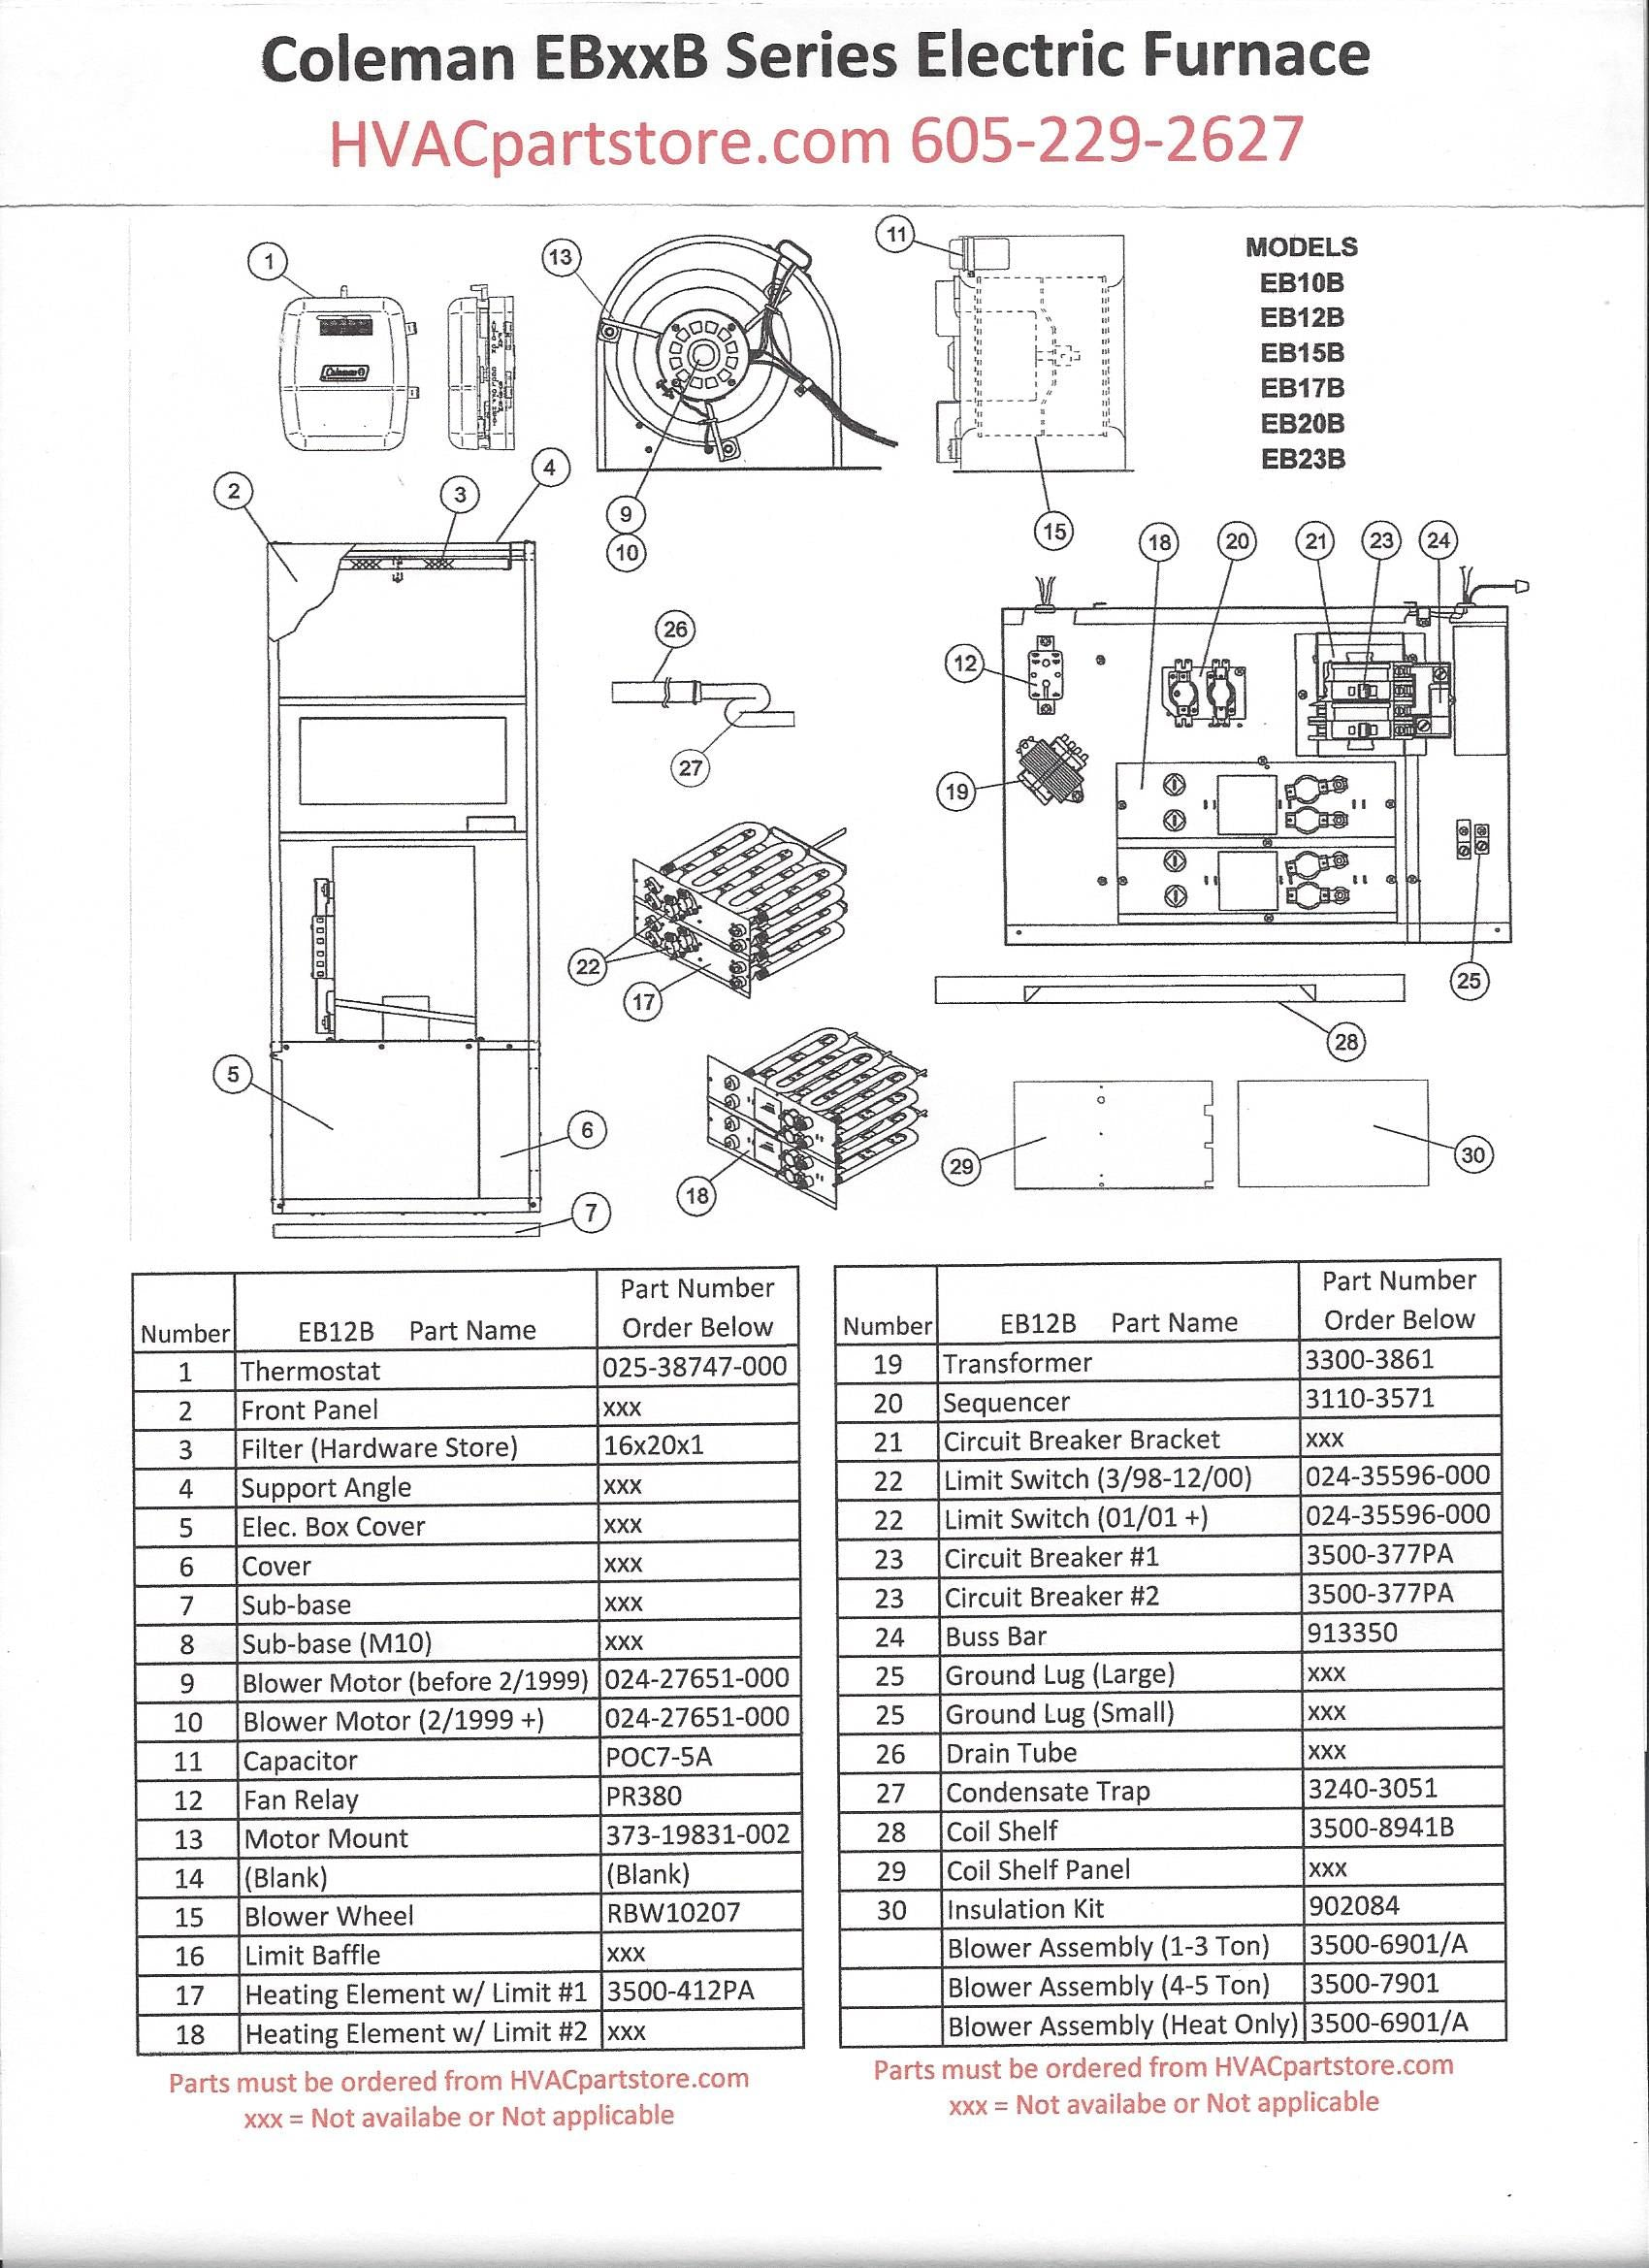 Honeywell 4 And 5 Wire Thermostat Wiring Instructions furthermore Philco Transformer Wire Color Diagram besides Eb12b Coleman Electric Furnace Parts further Electrical Diagram Schematic Symbols together with York Furnace Wiring Diagram Basic. on trane heat pump transformer